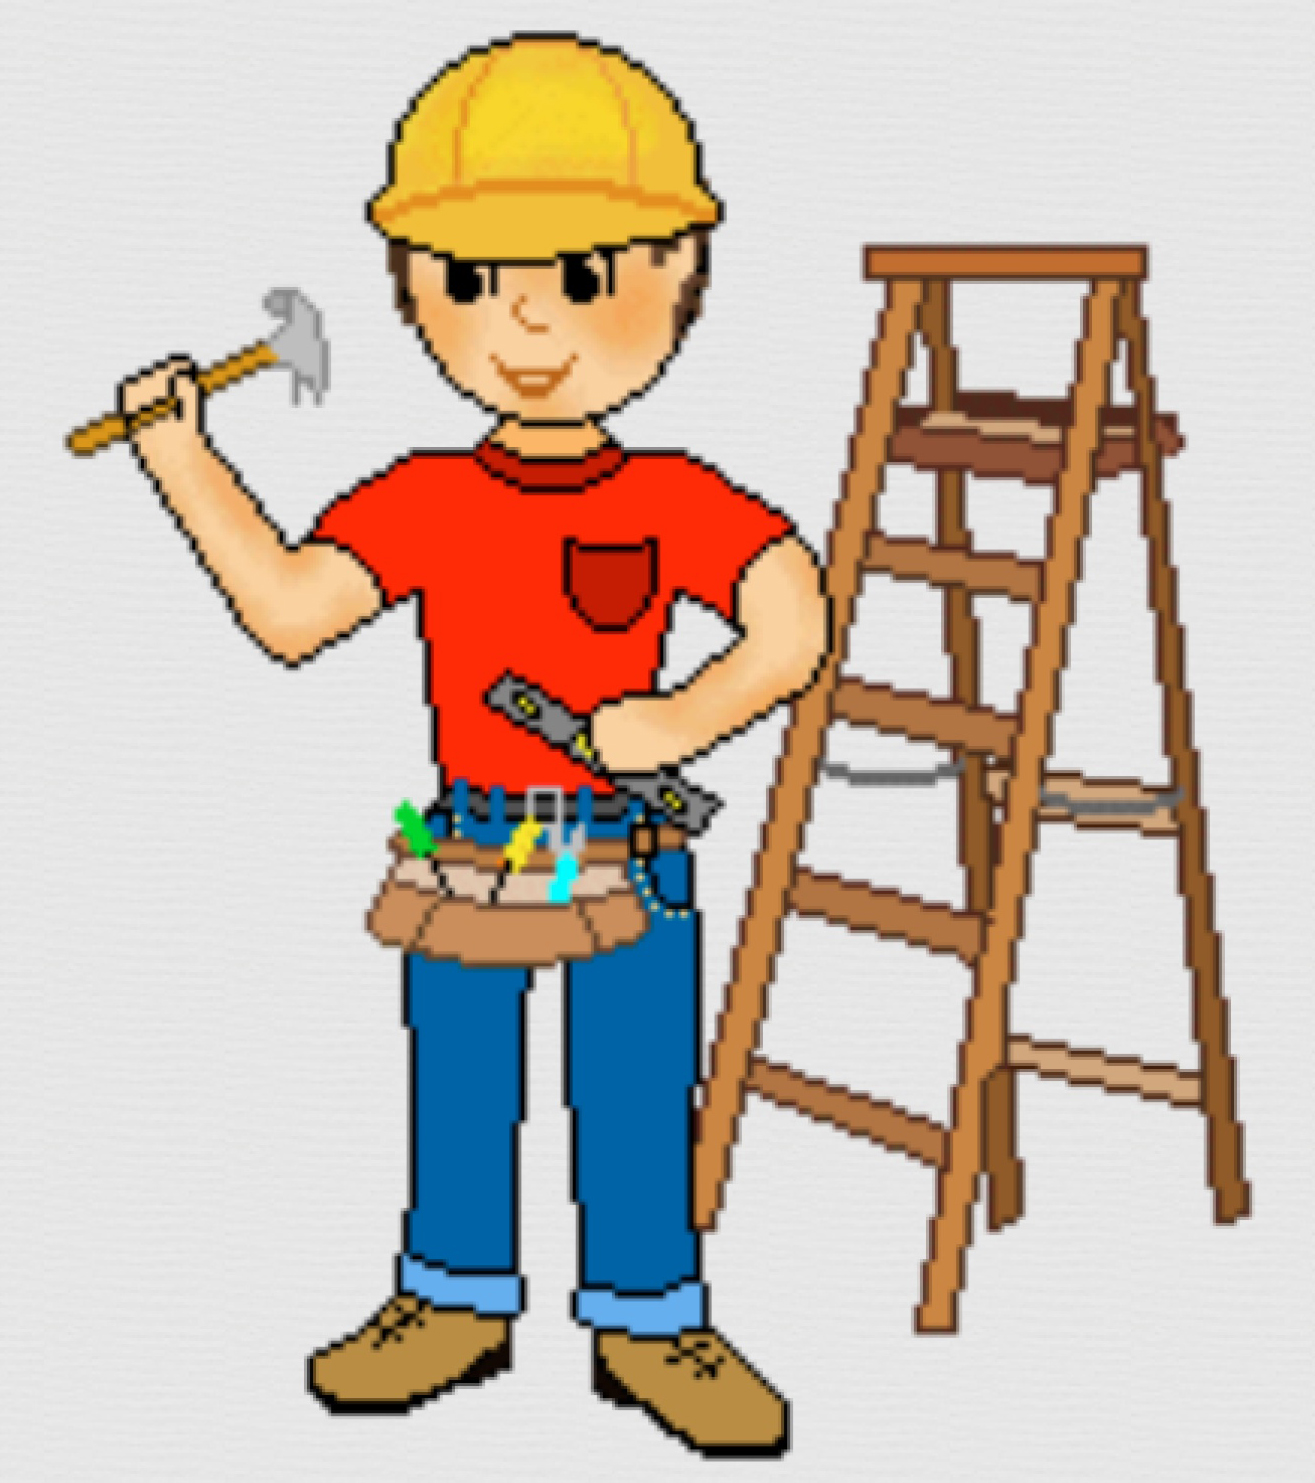 1315x1483 Computer Clipart Construction Worker